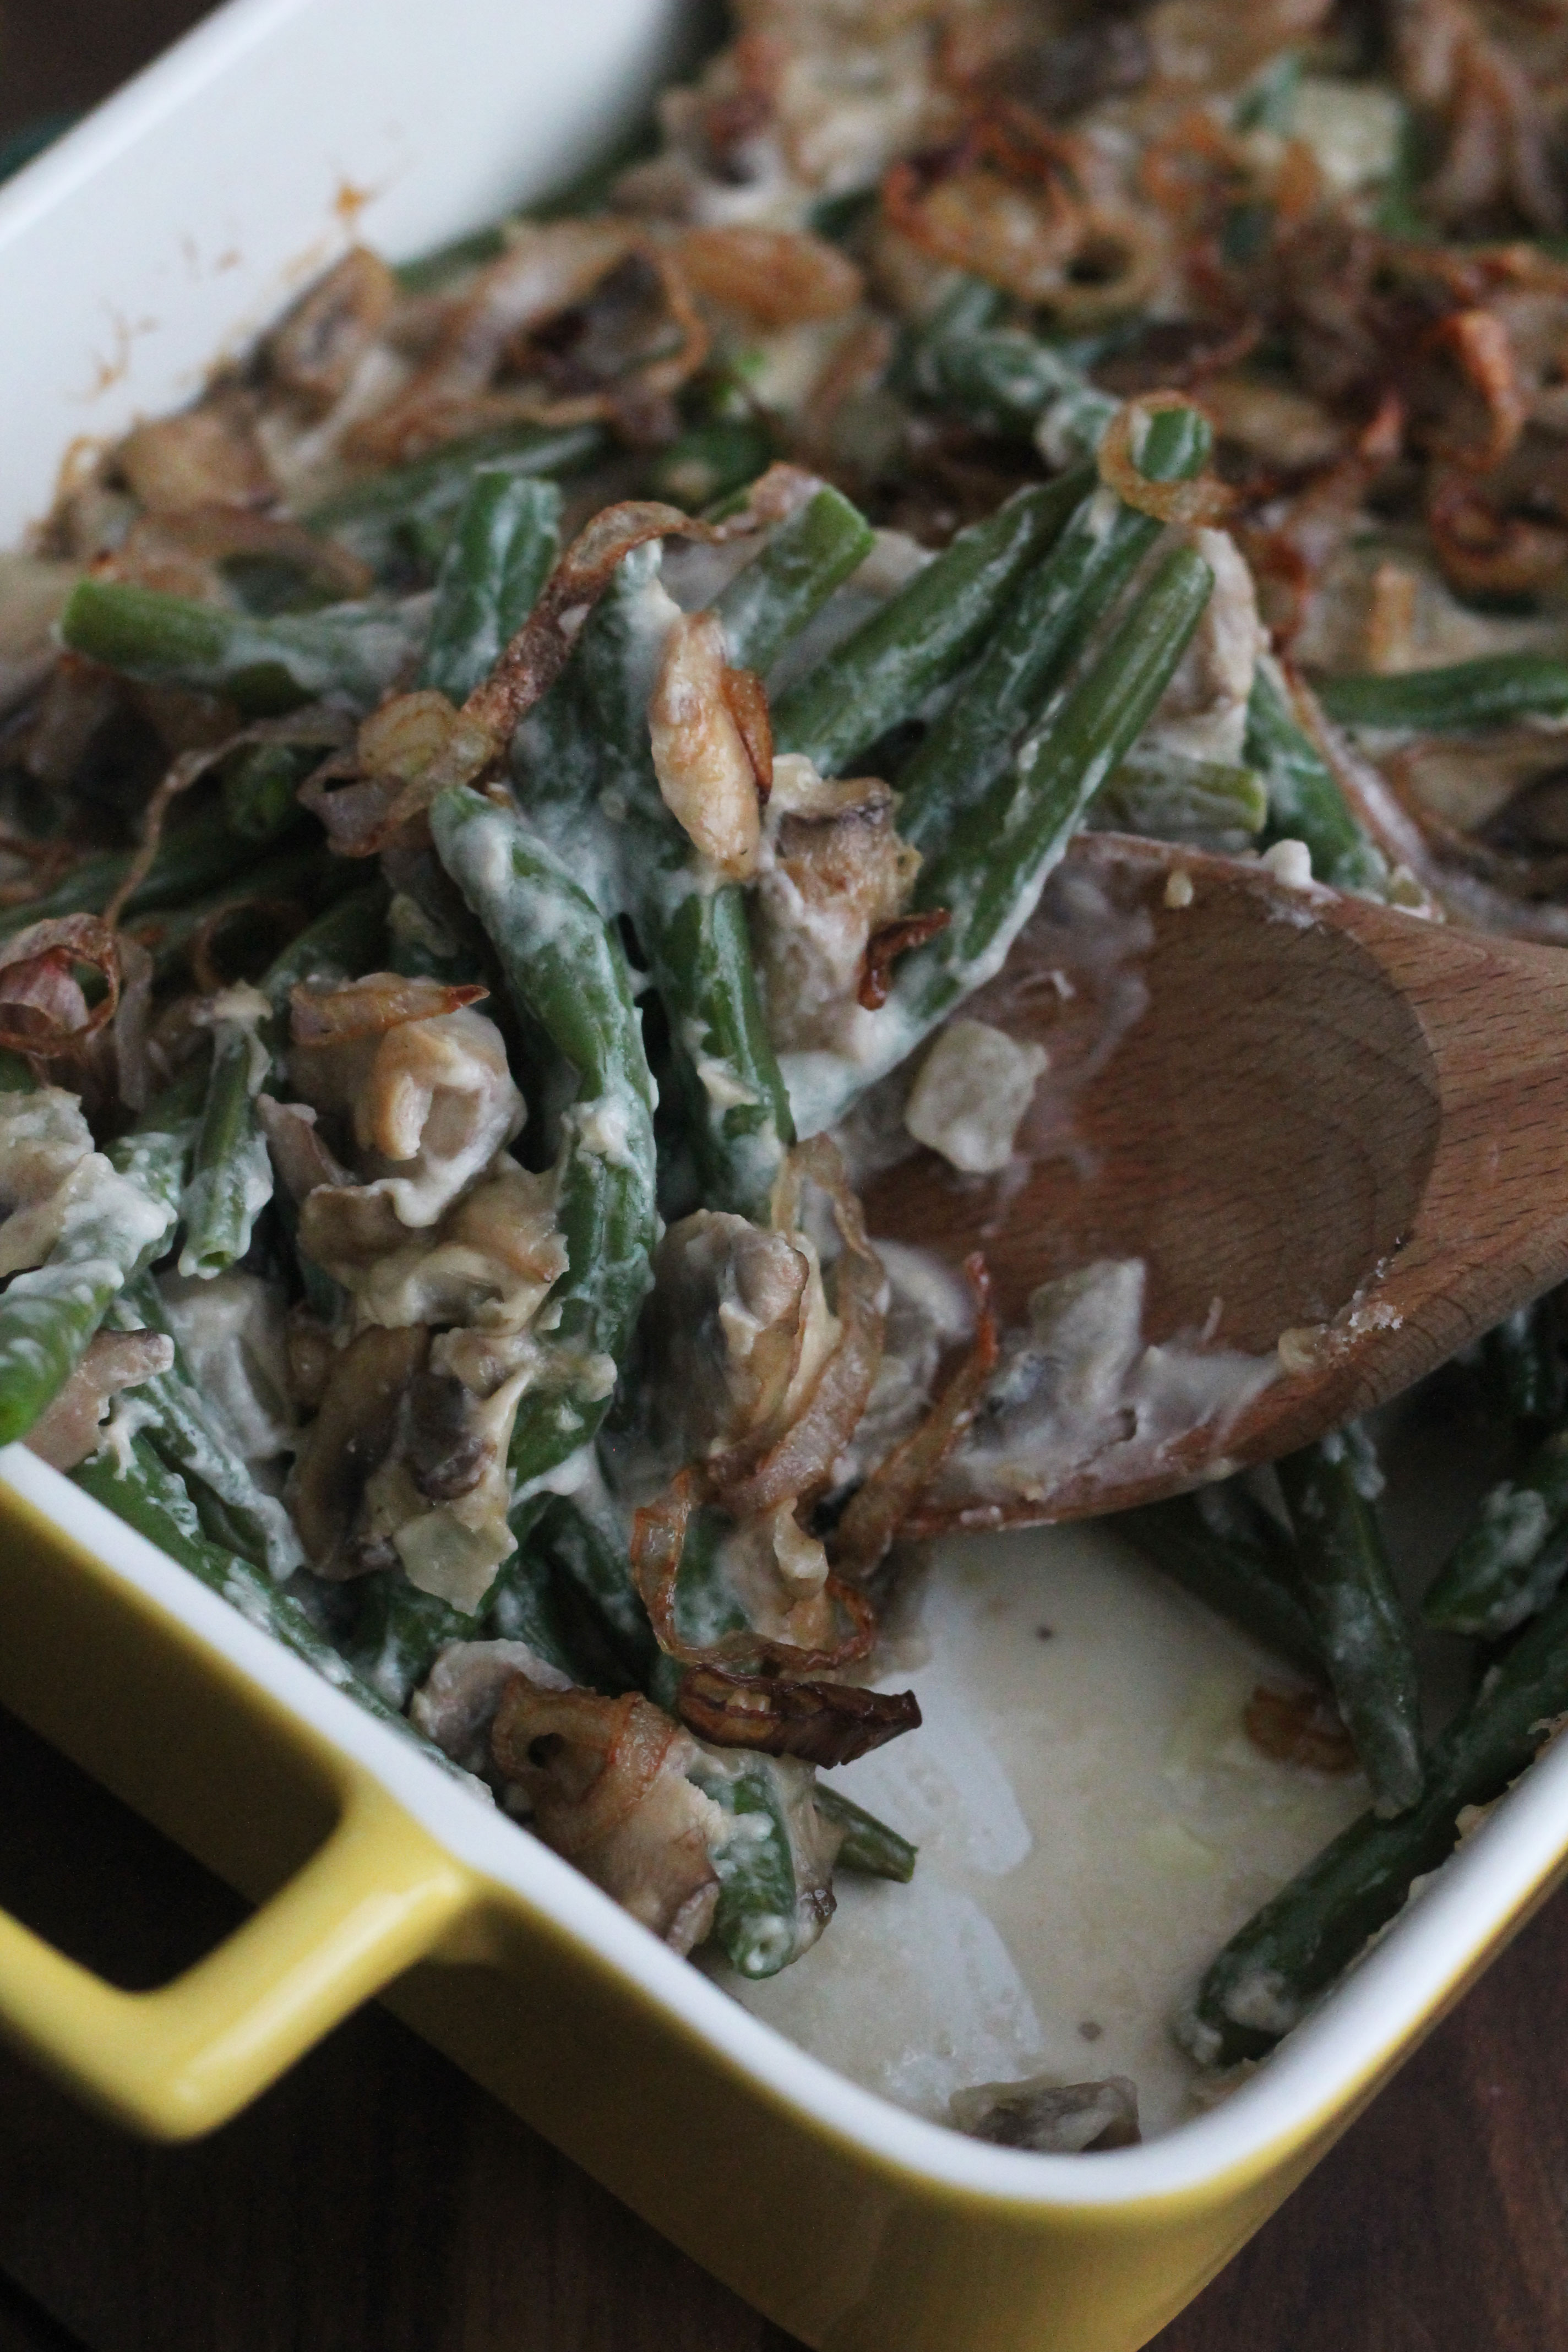 With fresh green beans, homemade creamy mushroom sauce, and fried shallots this dish gives the old Green Bean Casserole a run for its money